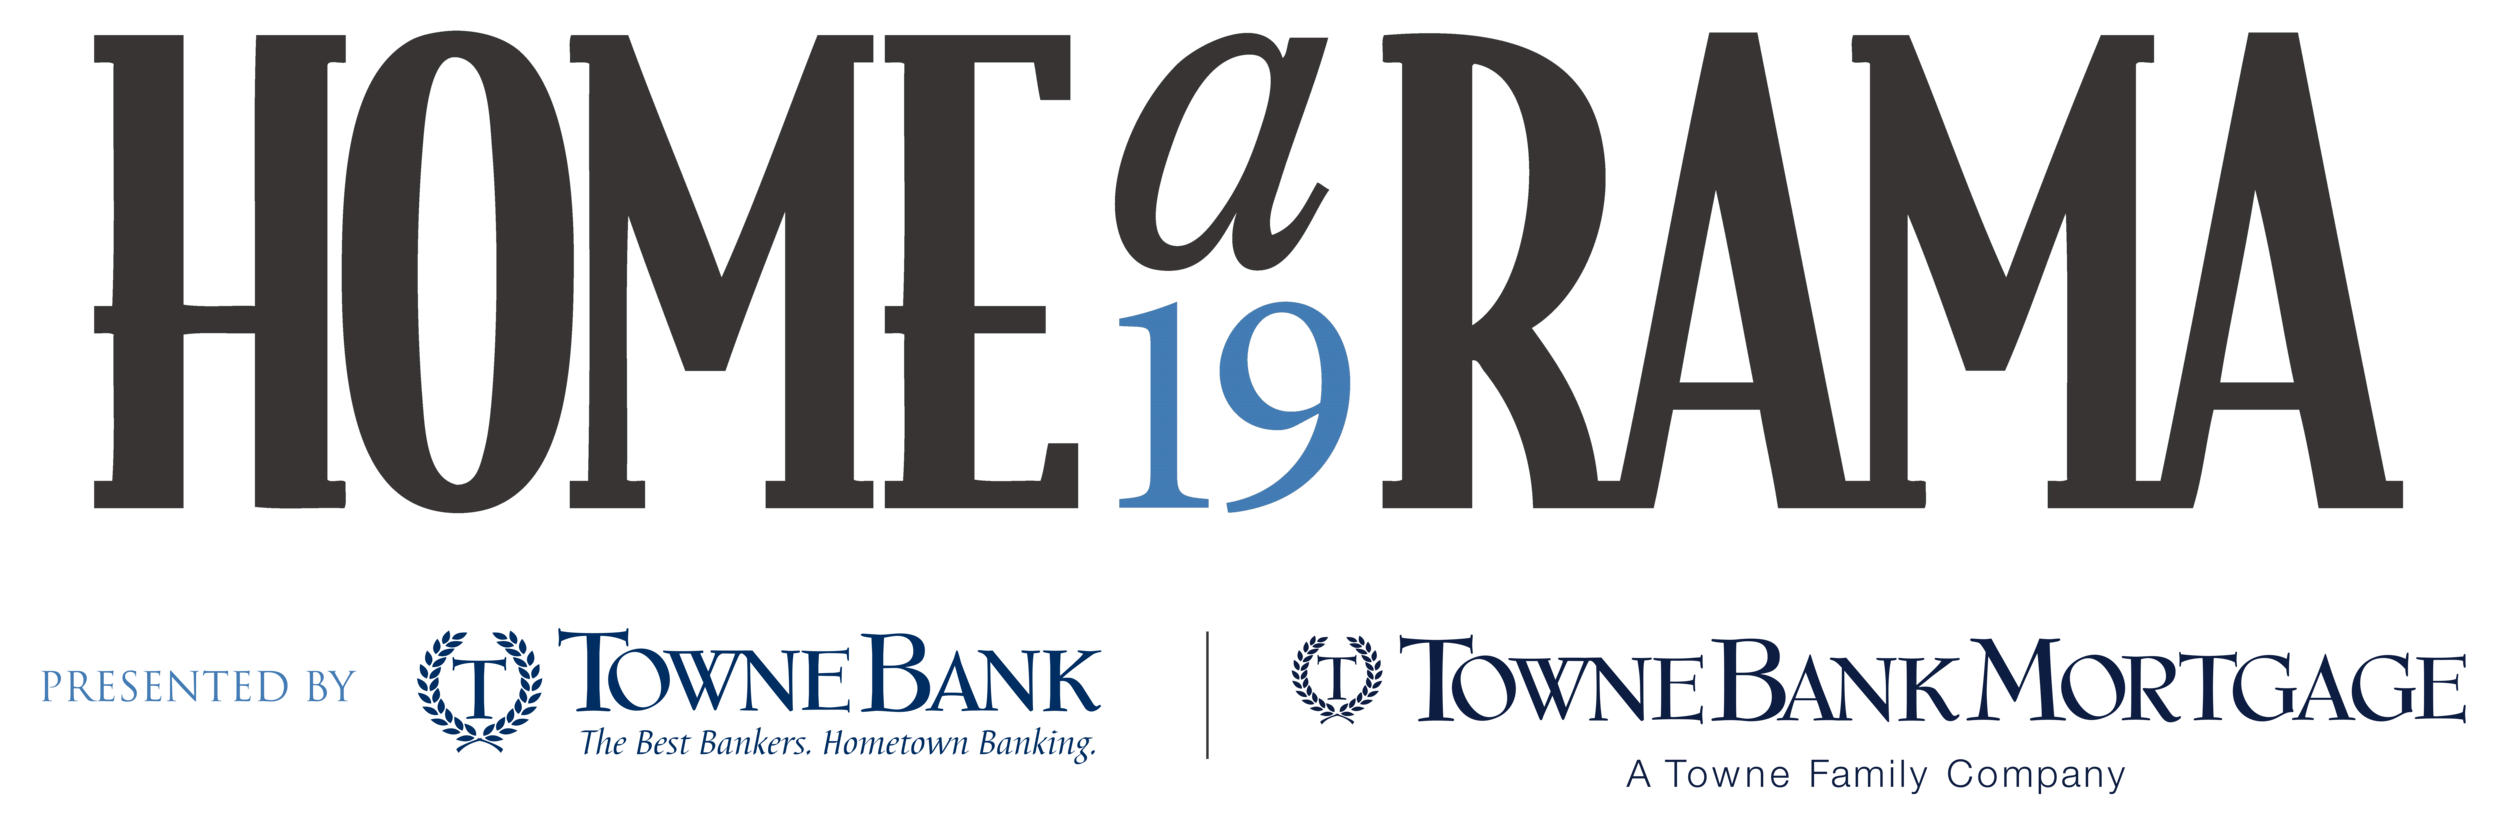 Homearama Masthead with TowneBank.png